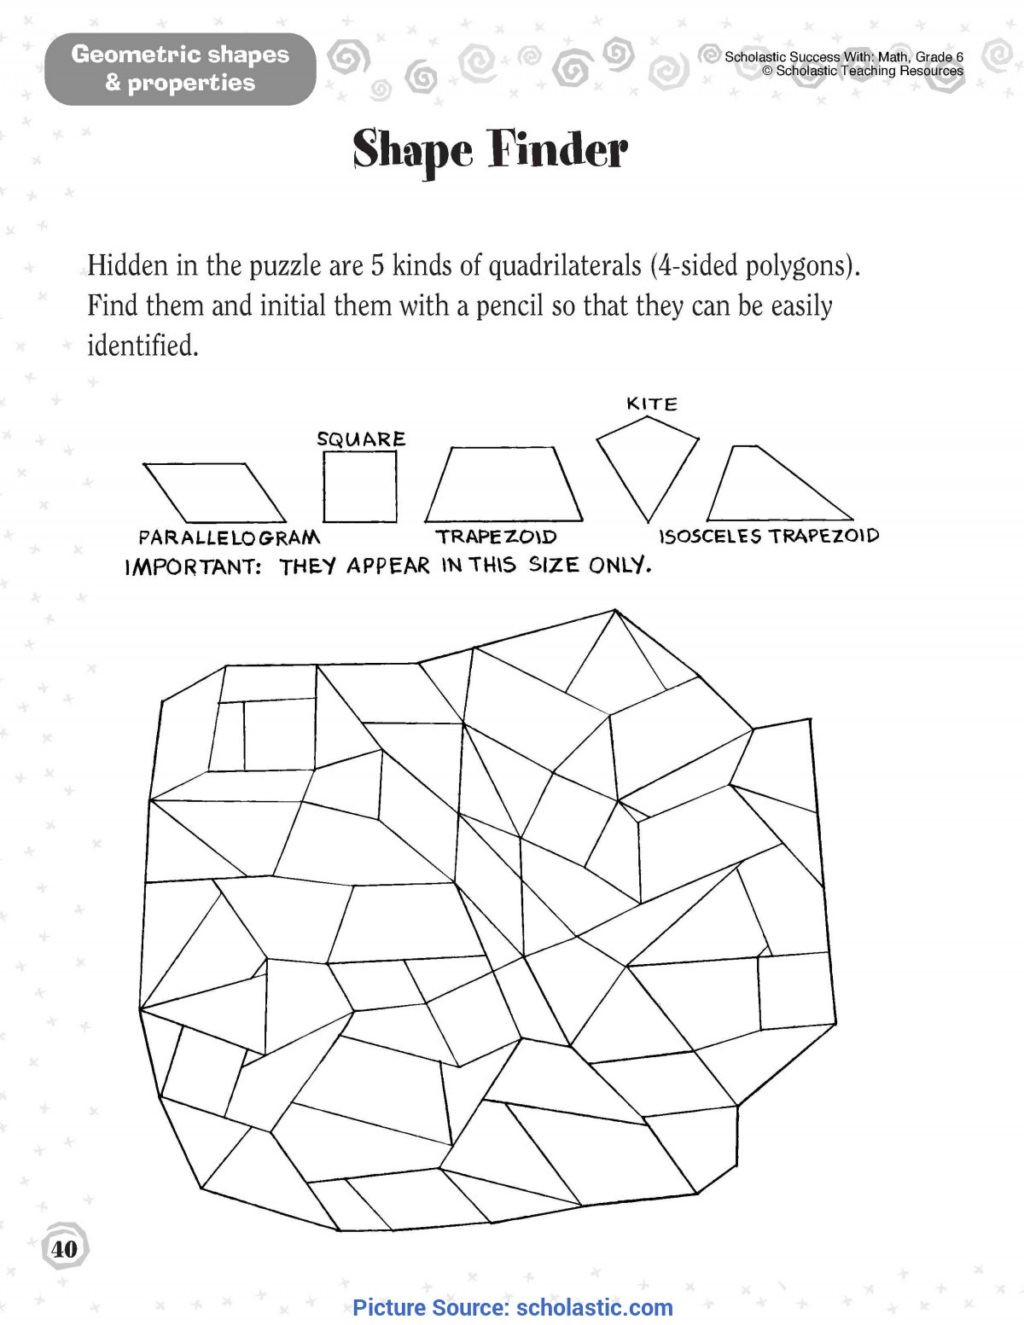 Polygon Worksheets 3rd Grade Worksheet Splendi 3rd Grade Geometry Worksheets Second Ota